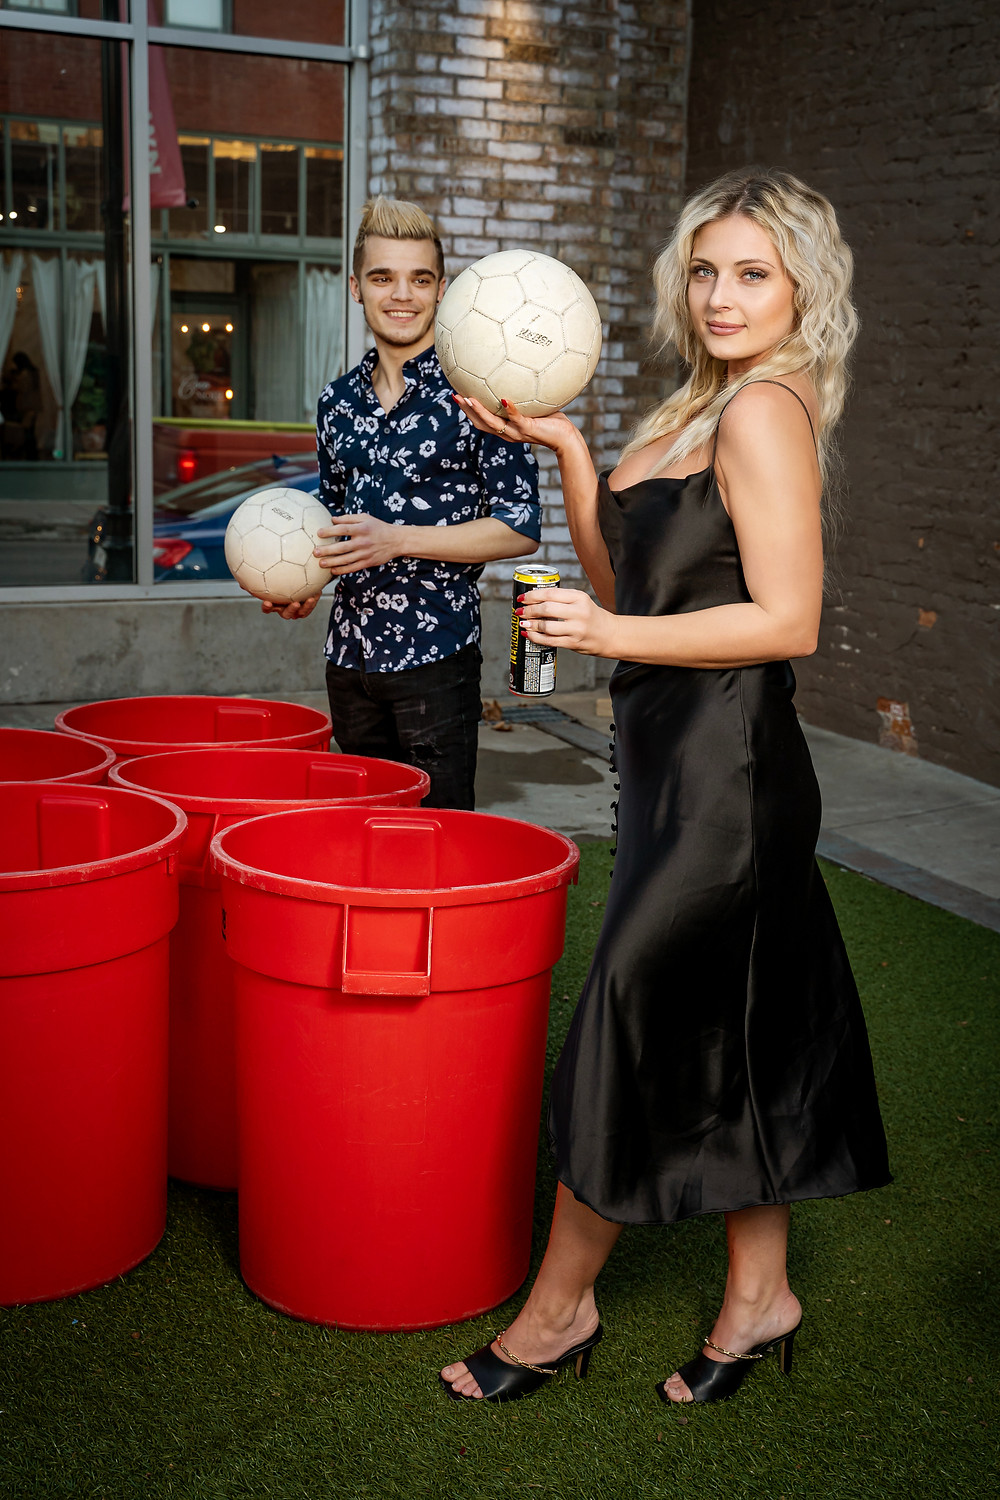 Beer Pong with Hot Models